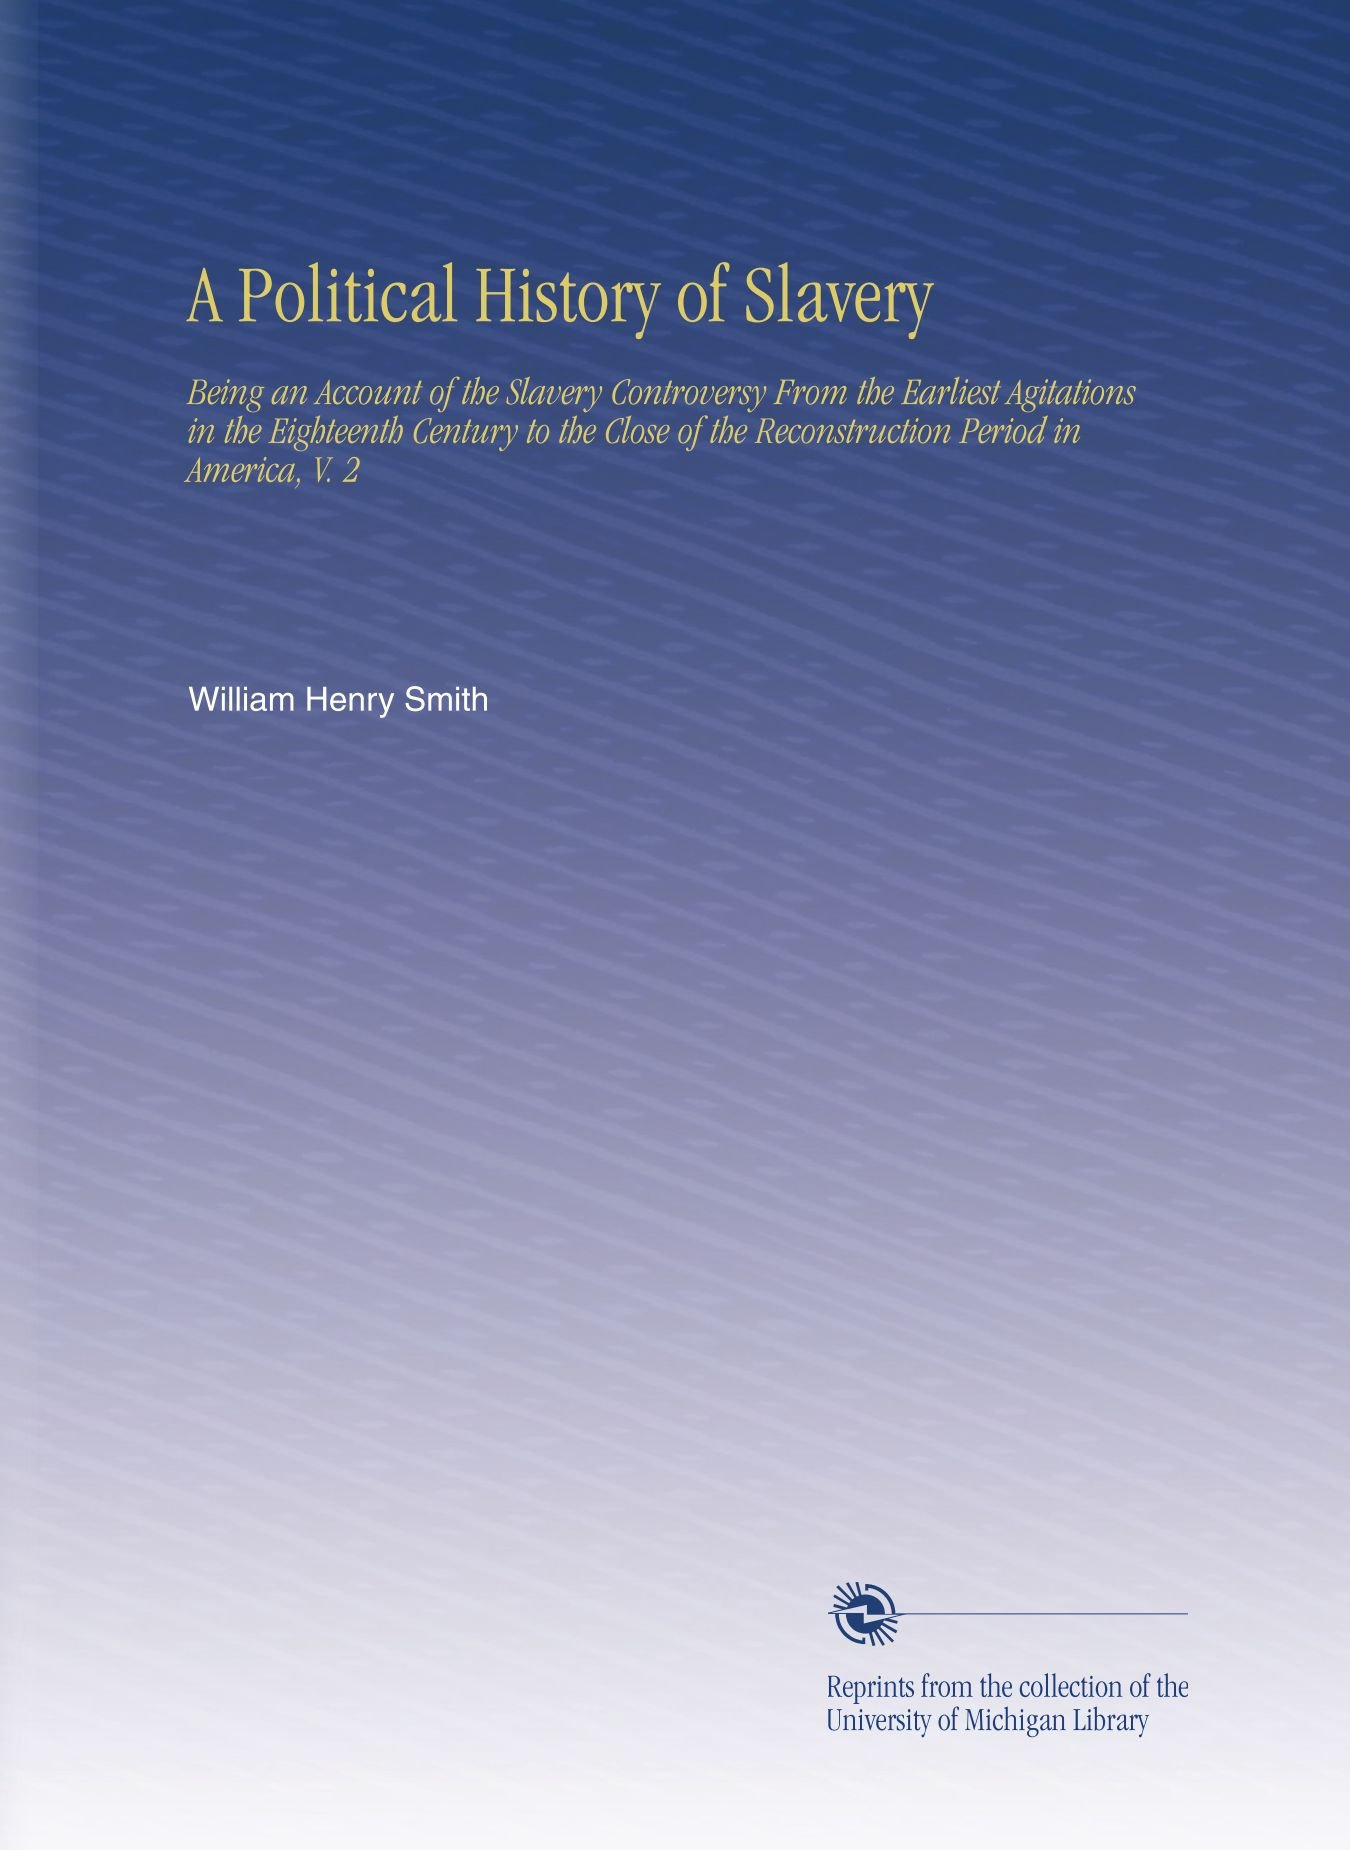 A Political History of Slavery: Being an Account of the Slavery Controversy From the Earliest Agitations in the Eighteenth Century to the Close of the Reconstruction Period in America, V. 2 pdf